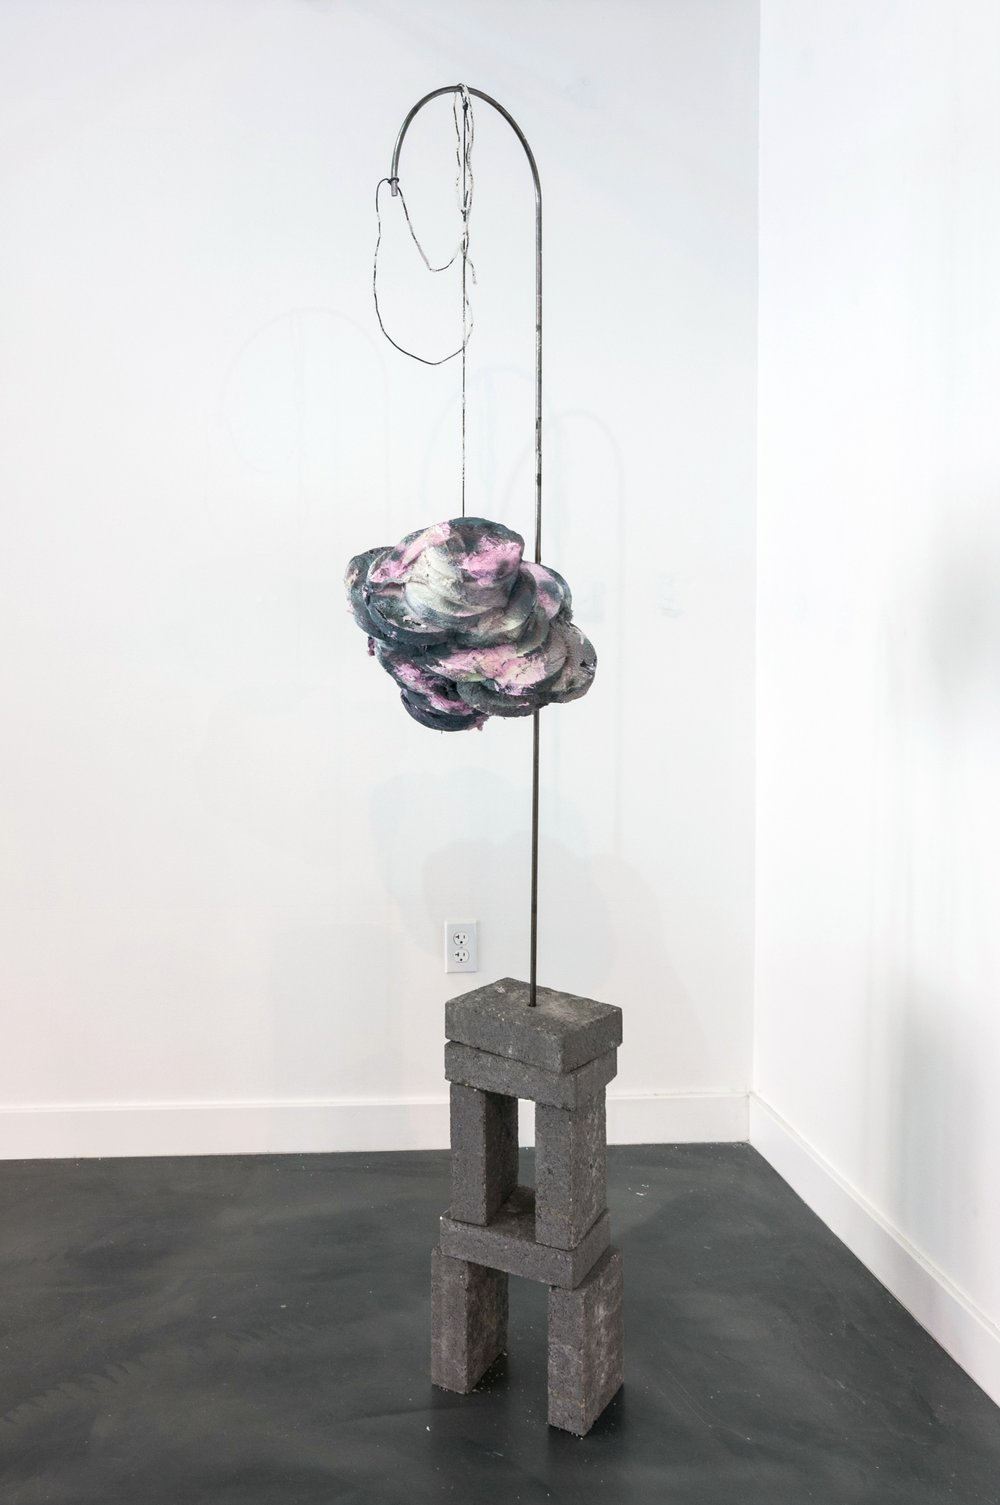 FLOATING ORB  Foam, latex paint, fiberfill, crystalized rope, metal curve, cement pavers, spray paint.